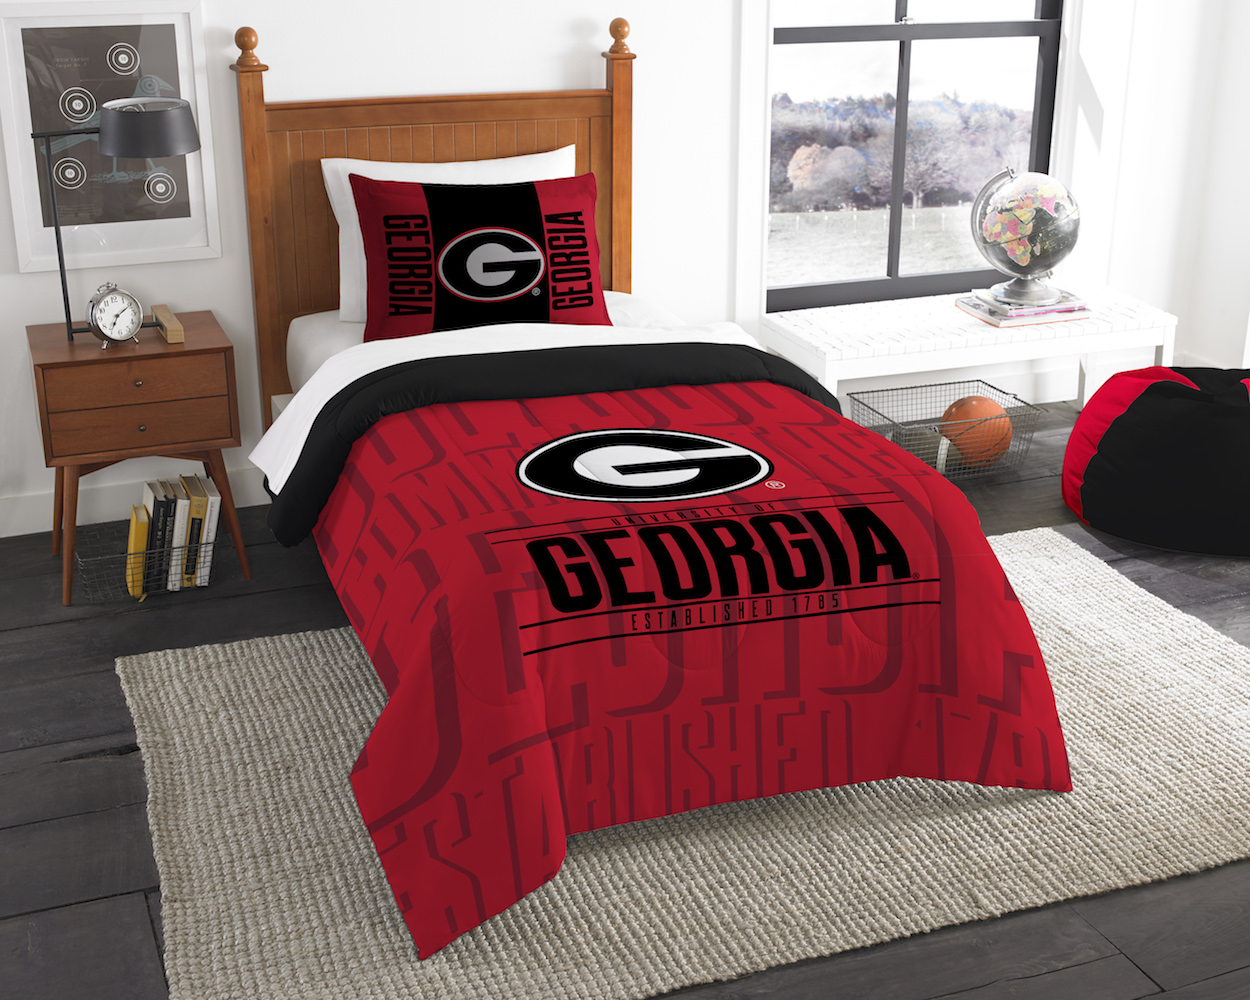 Georgia Bulldogs Twin Comforter Set with Sham